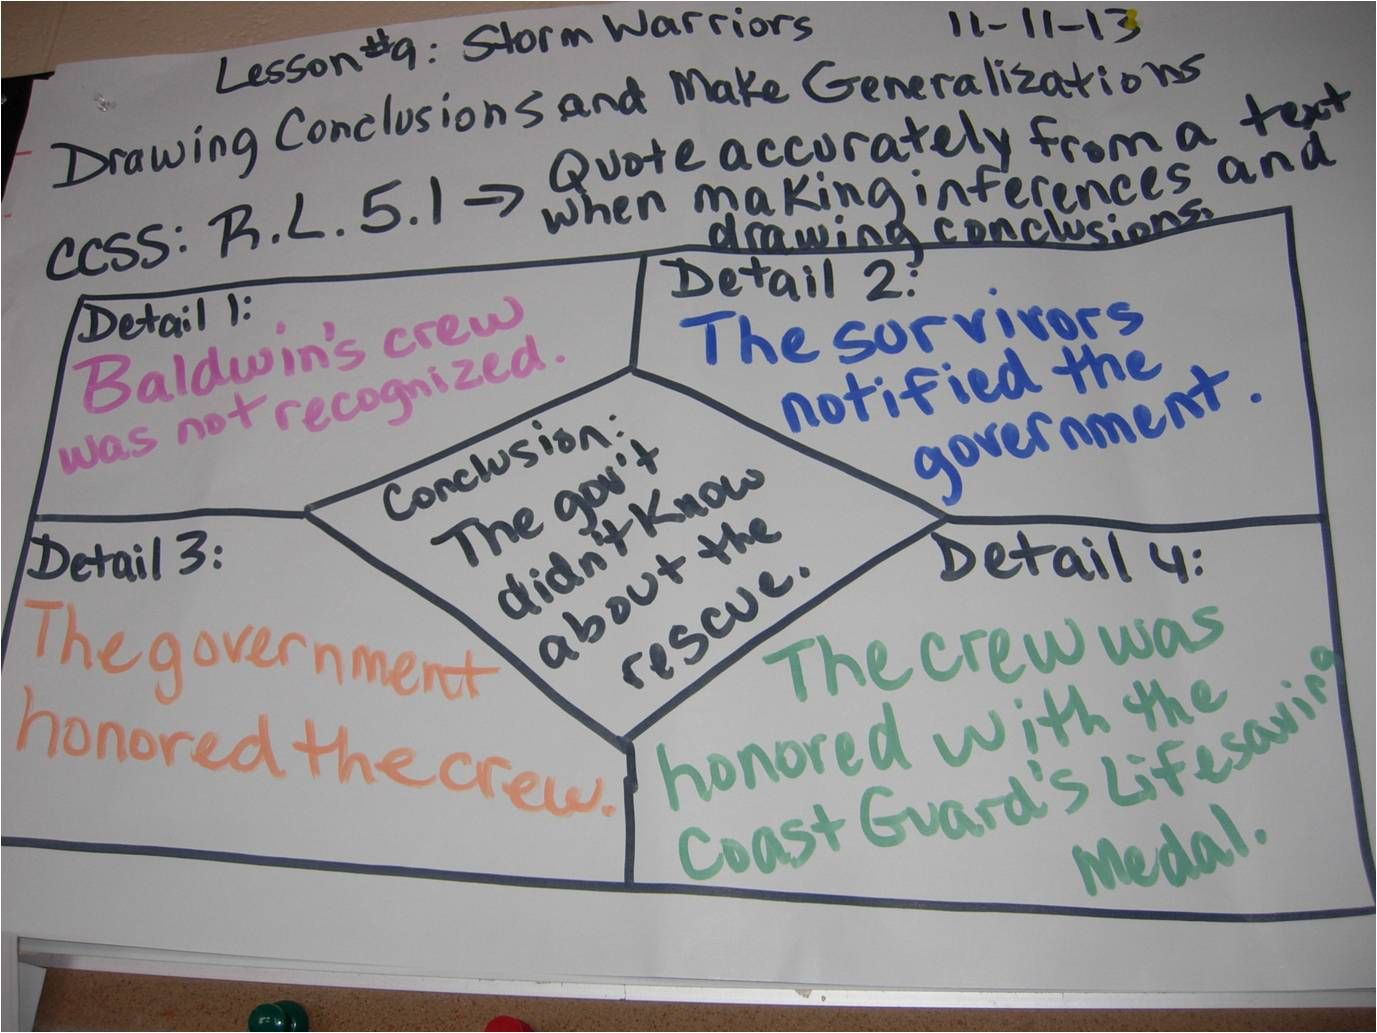 Ccss R L 5 1 Storm Warriors Drawing Conclusions And Making Generalizations 95th Street School Geometry Worksheets Teaching Techniques Drawing Conclusions [ 1033 x 1377 Pixel ]